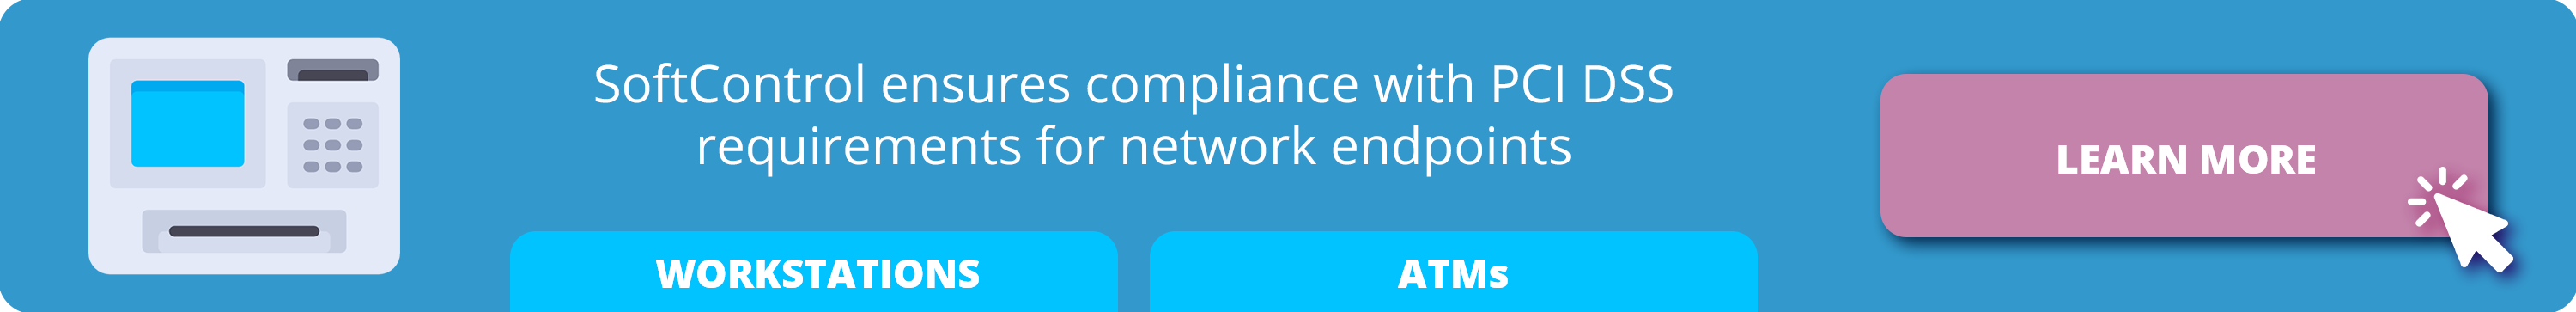 SoftControl ensures compliance with PCI DSS requirements for network endpoints